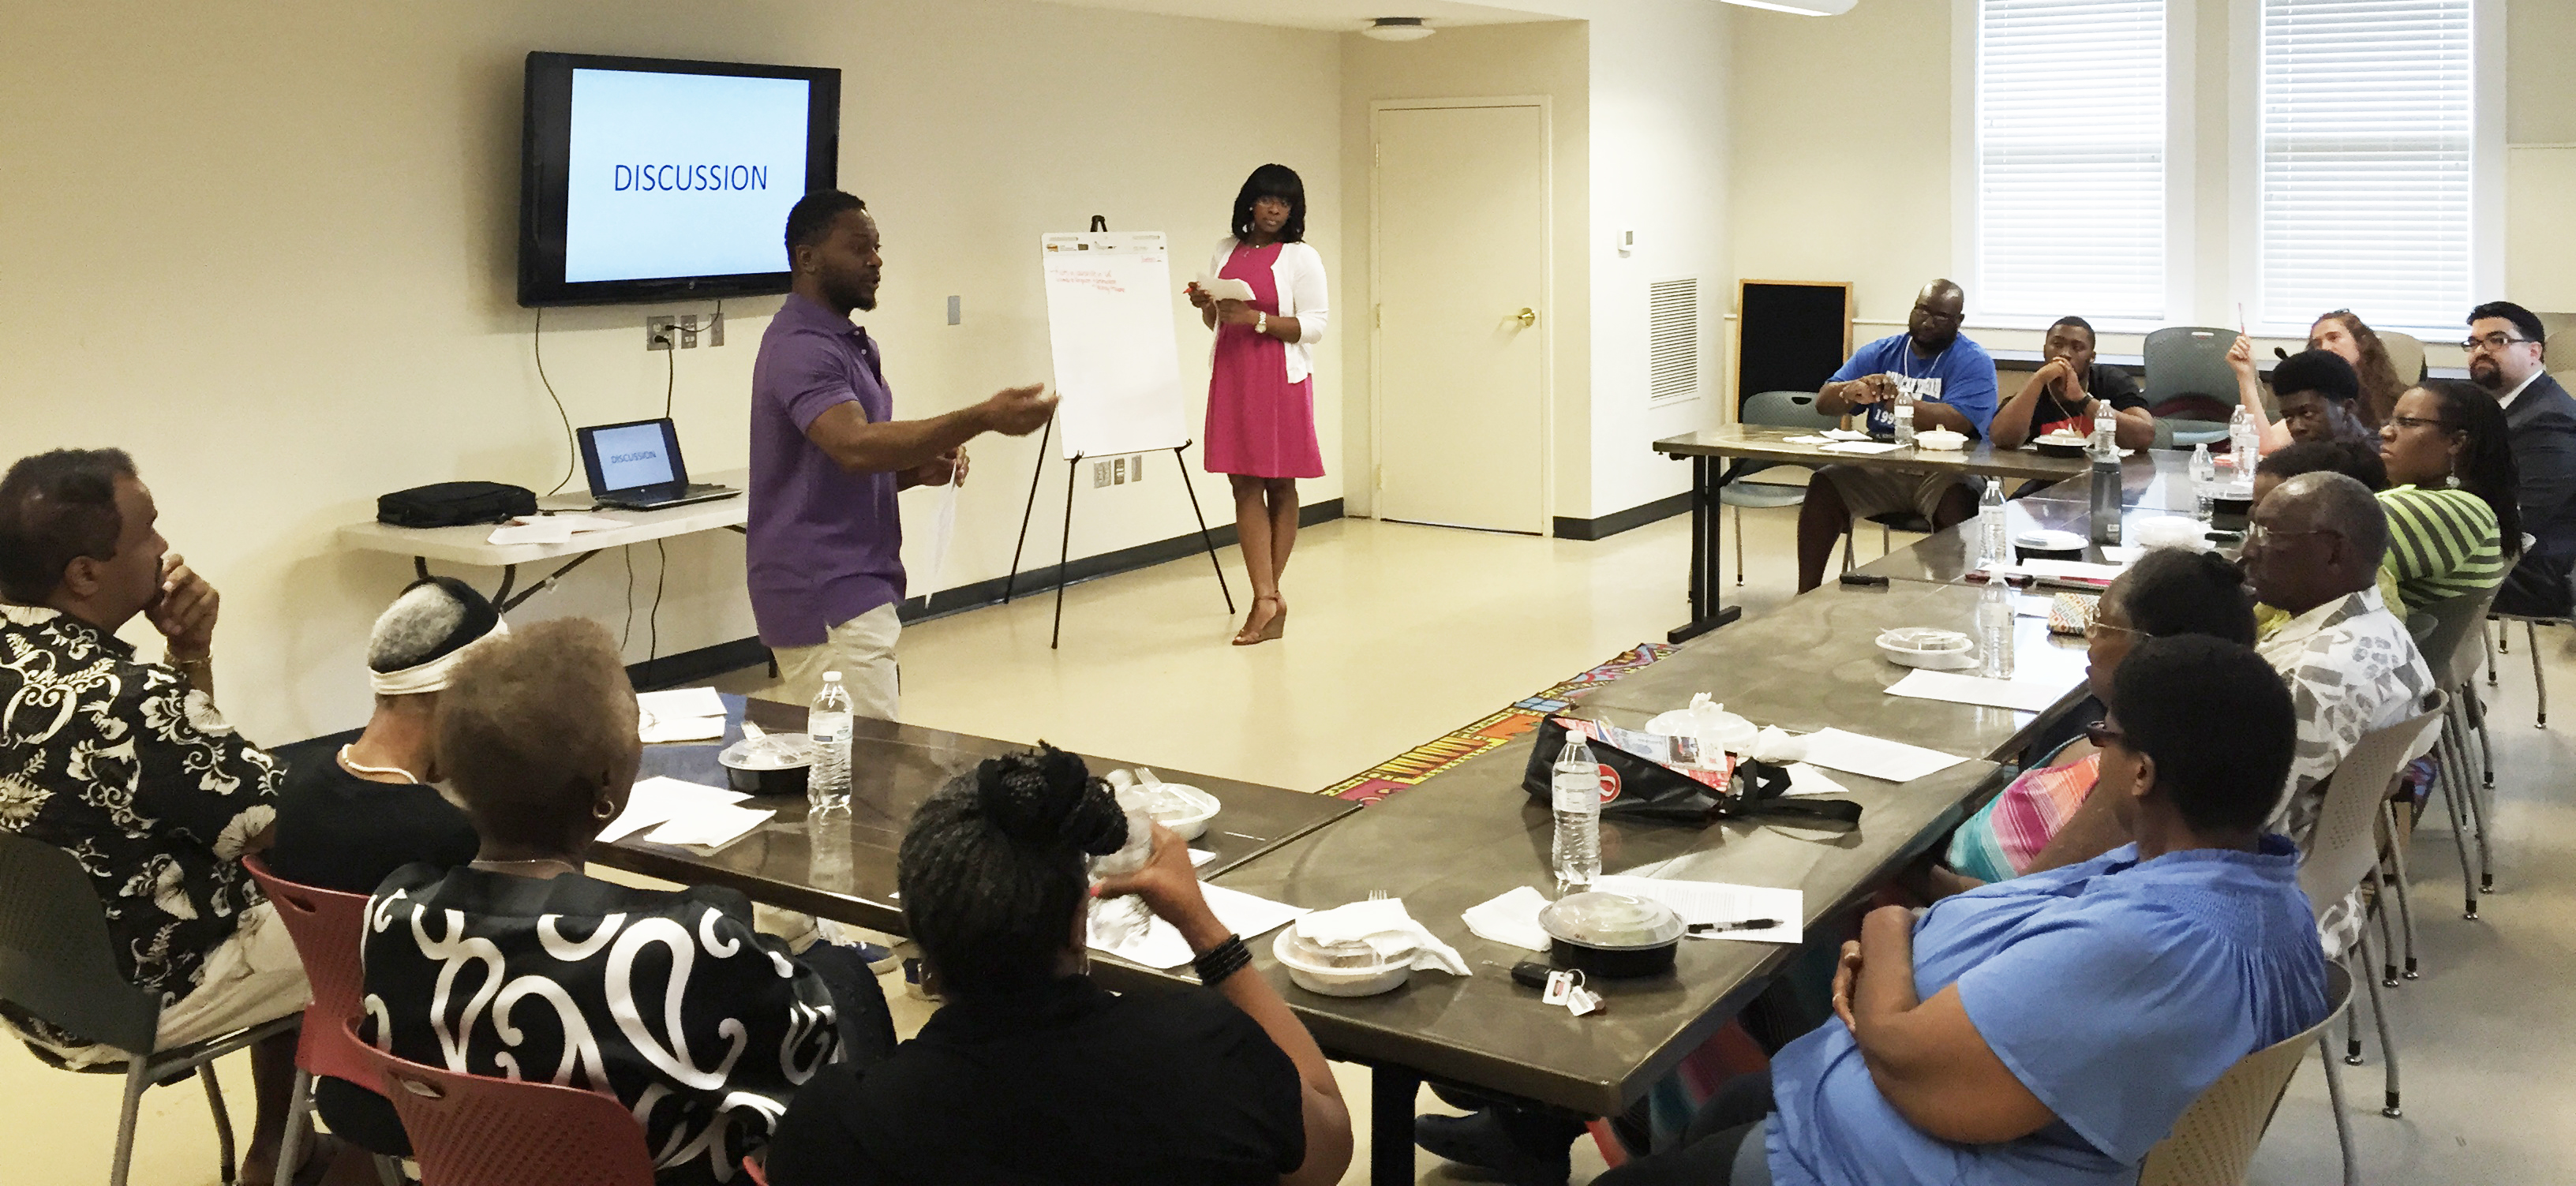 HSC doctoral students called to address social justice